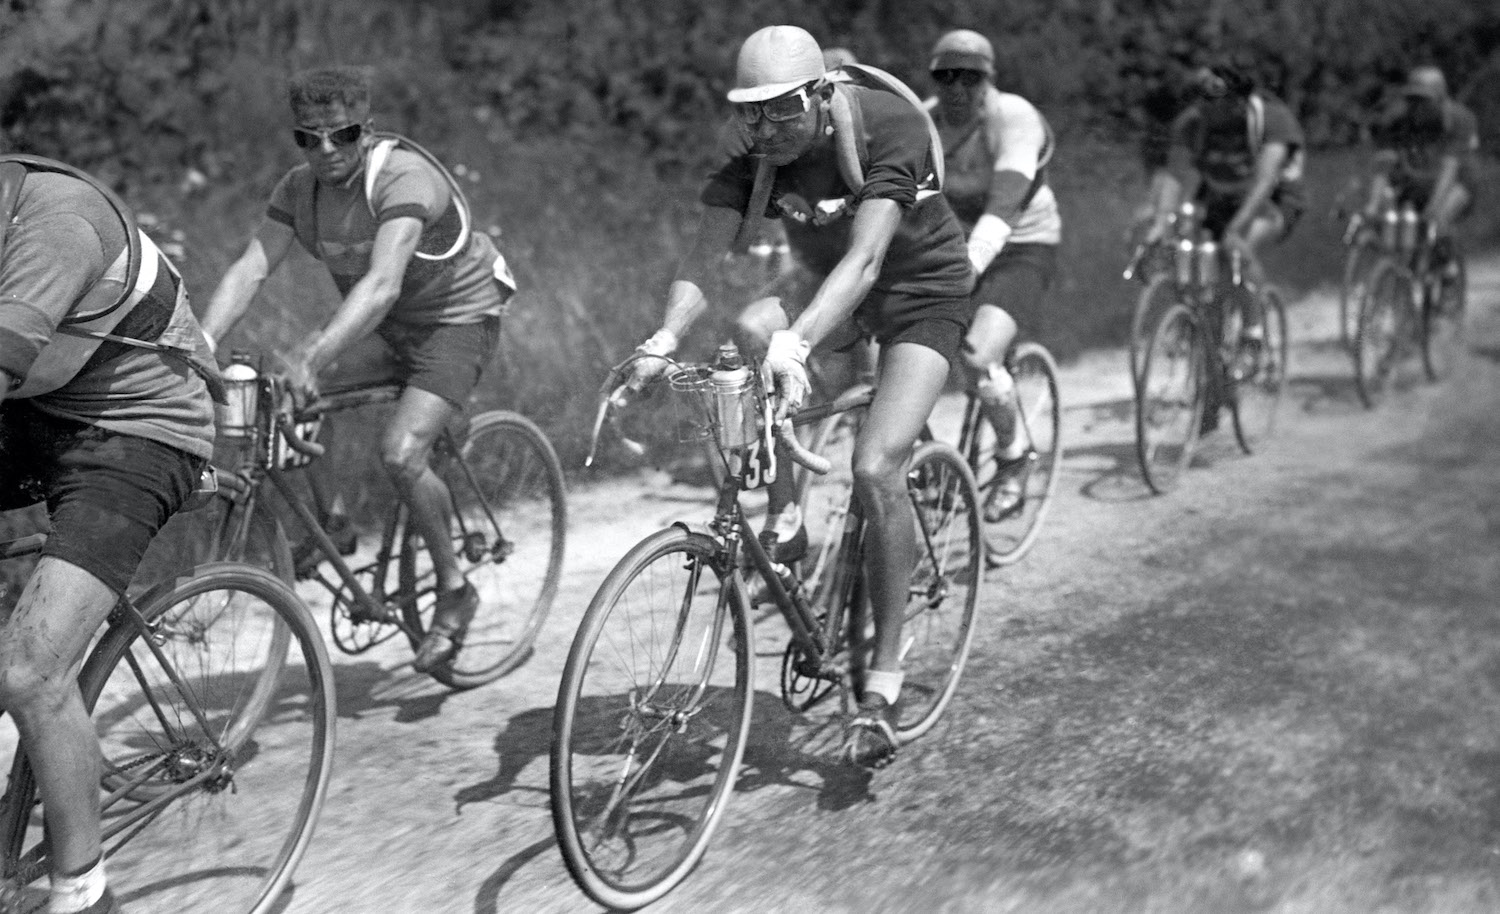 French racing cyclist Charles Pelissier rides during the 2nd stage Caen-Dinan of the 24th Tour de France, on July 3, 1930. (Photo credit should read -/AFP via Getty Images)